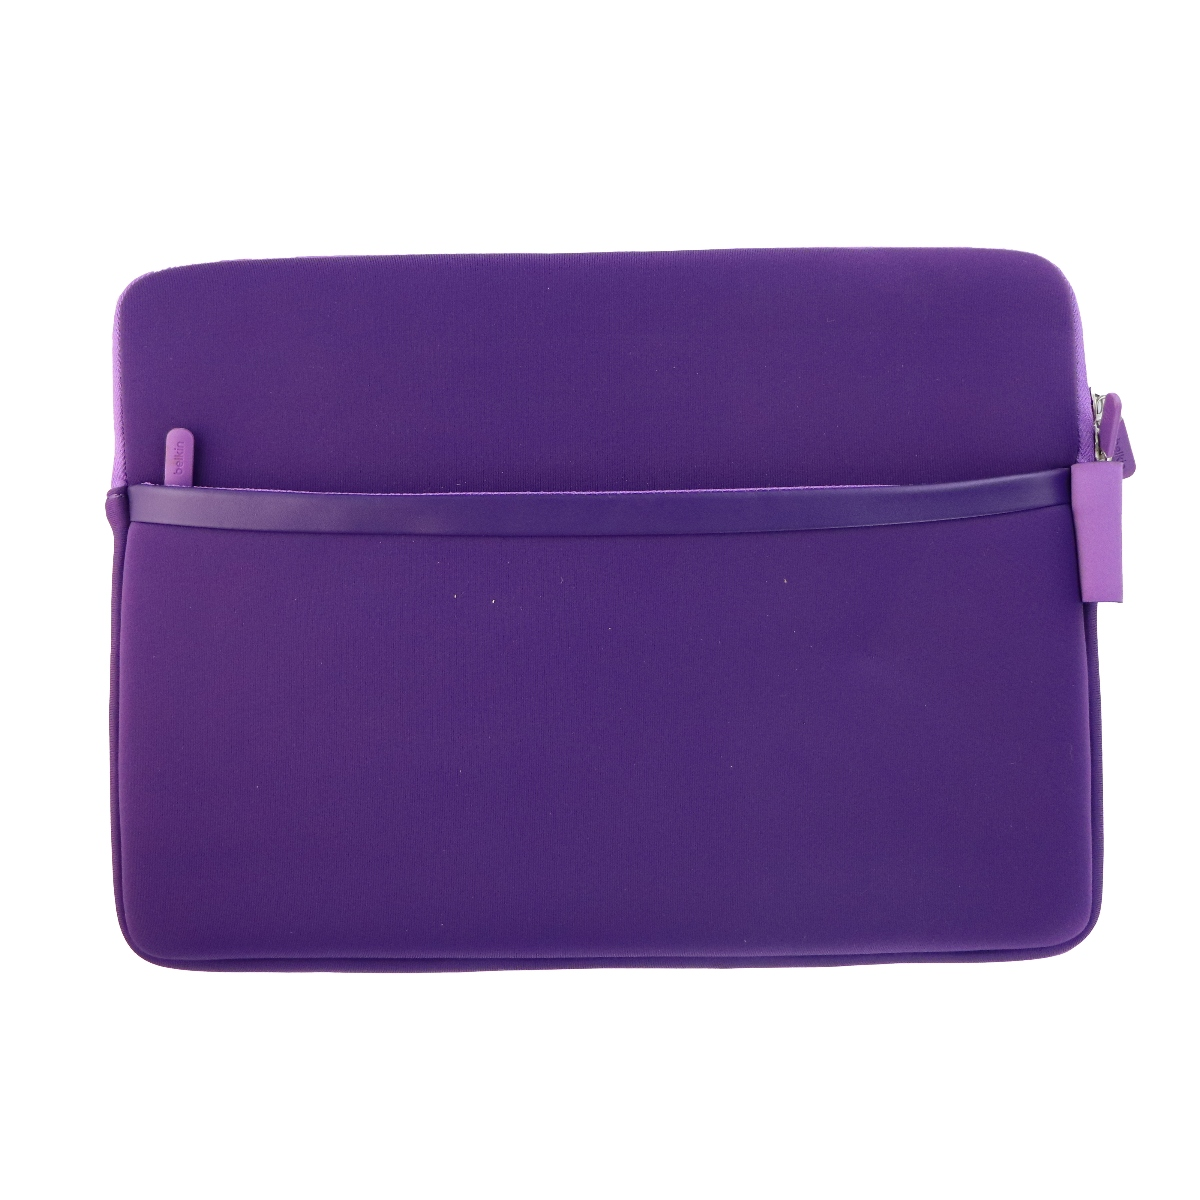 Belkin Pocket Sleeve for Microsoft Surface Pro 3 and Surface Pro 4 (Purple)